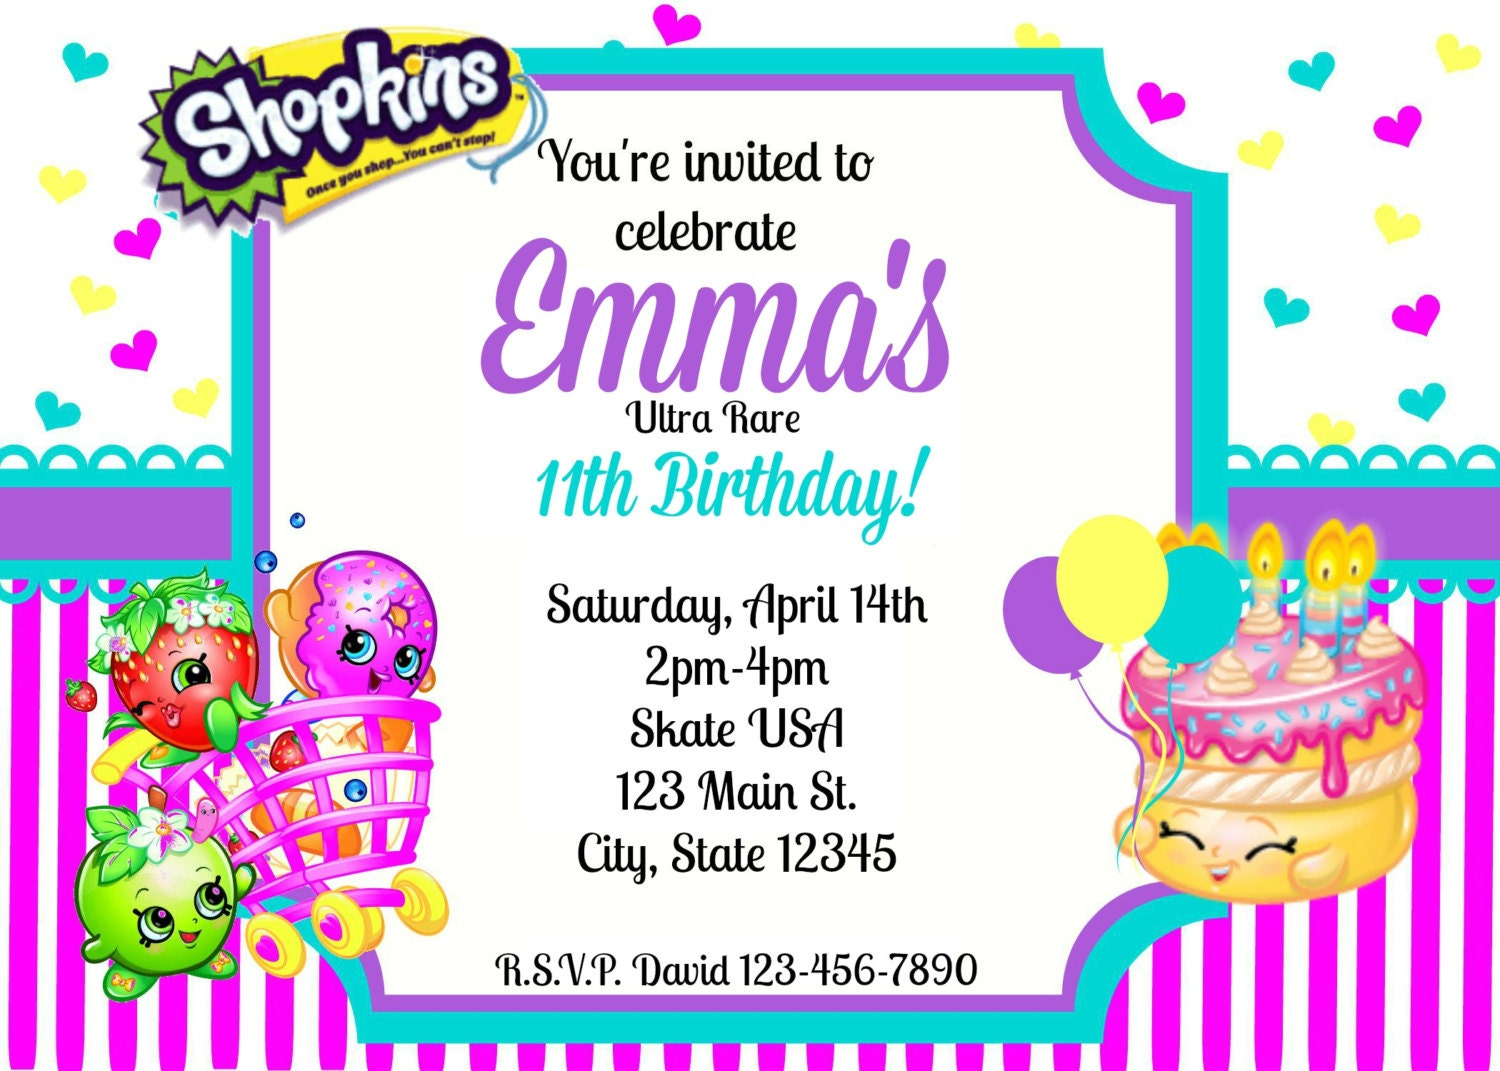 photograph regarding Shopkins Printable Invitations named Shopkins Invites Template: Awesome Absolutely free Printable Shopkins